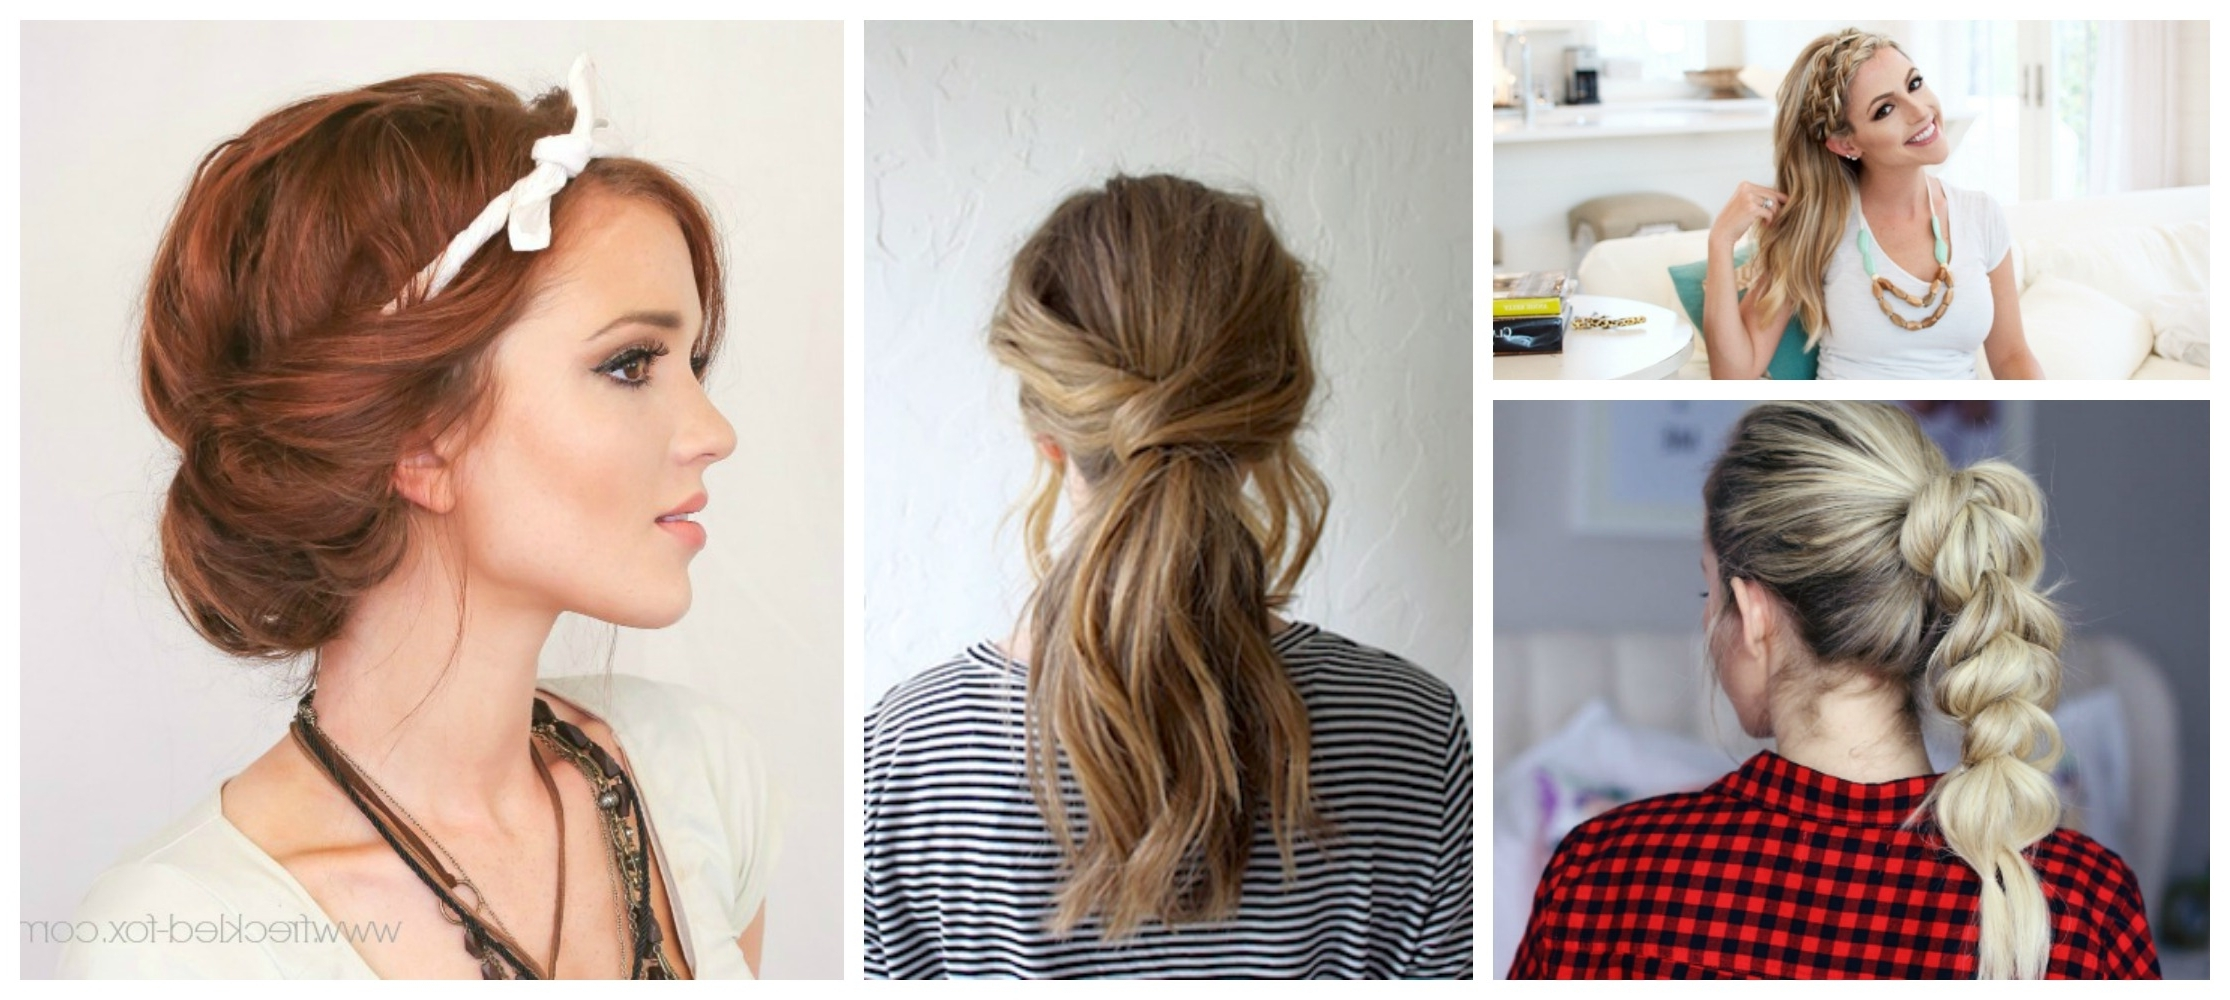 Well Liked Polished Upbraid Hairstyles Regarding 8 Quick & Easy Hairstyles That Make Dirty Hair Look Fab! – Diy Thought (View 10 of 20)